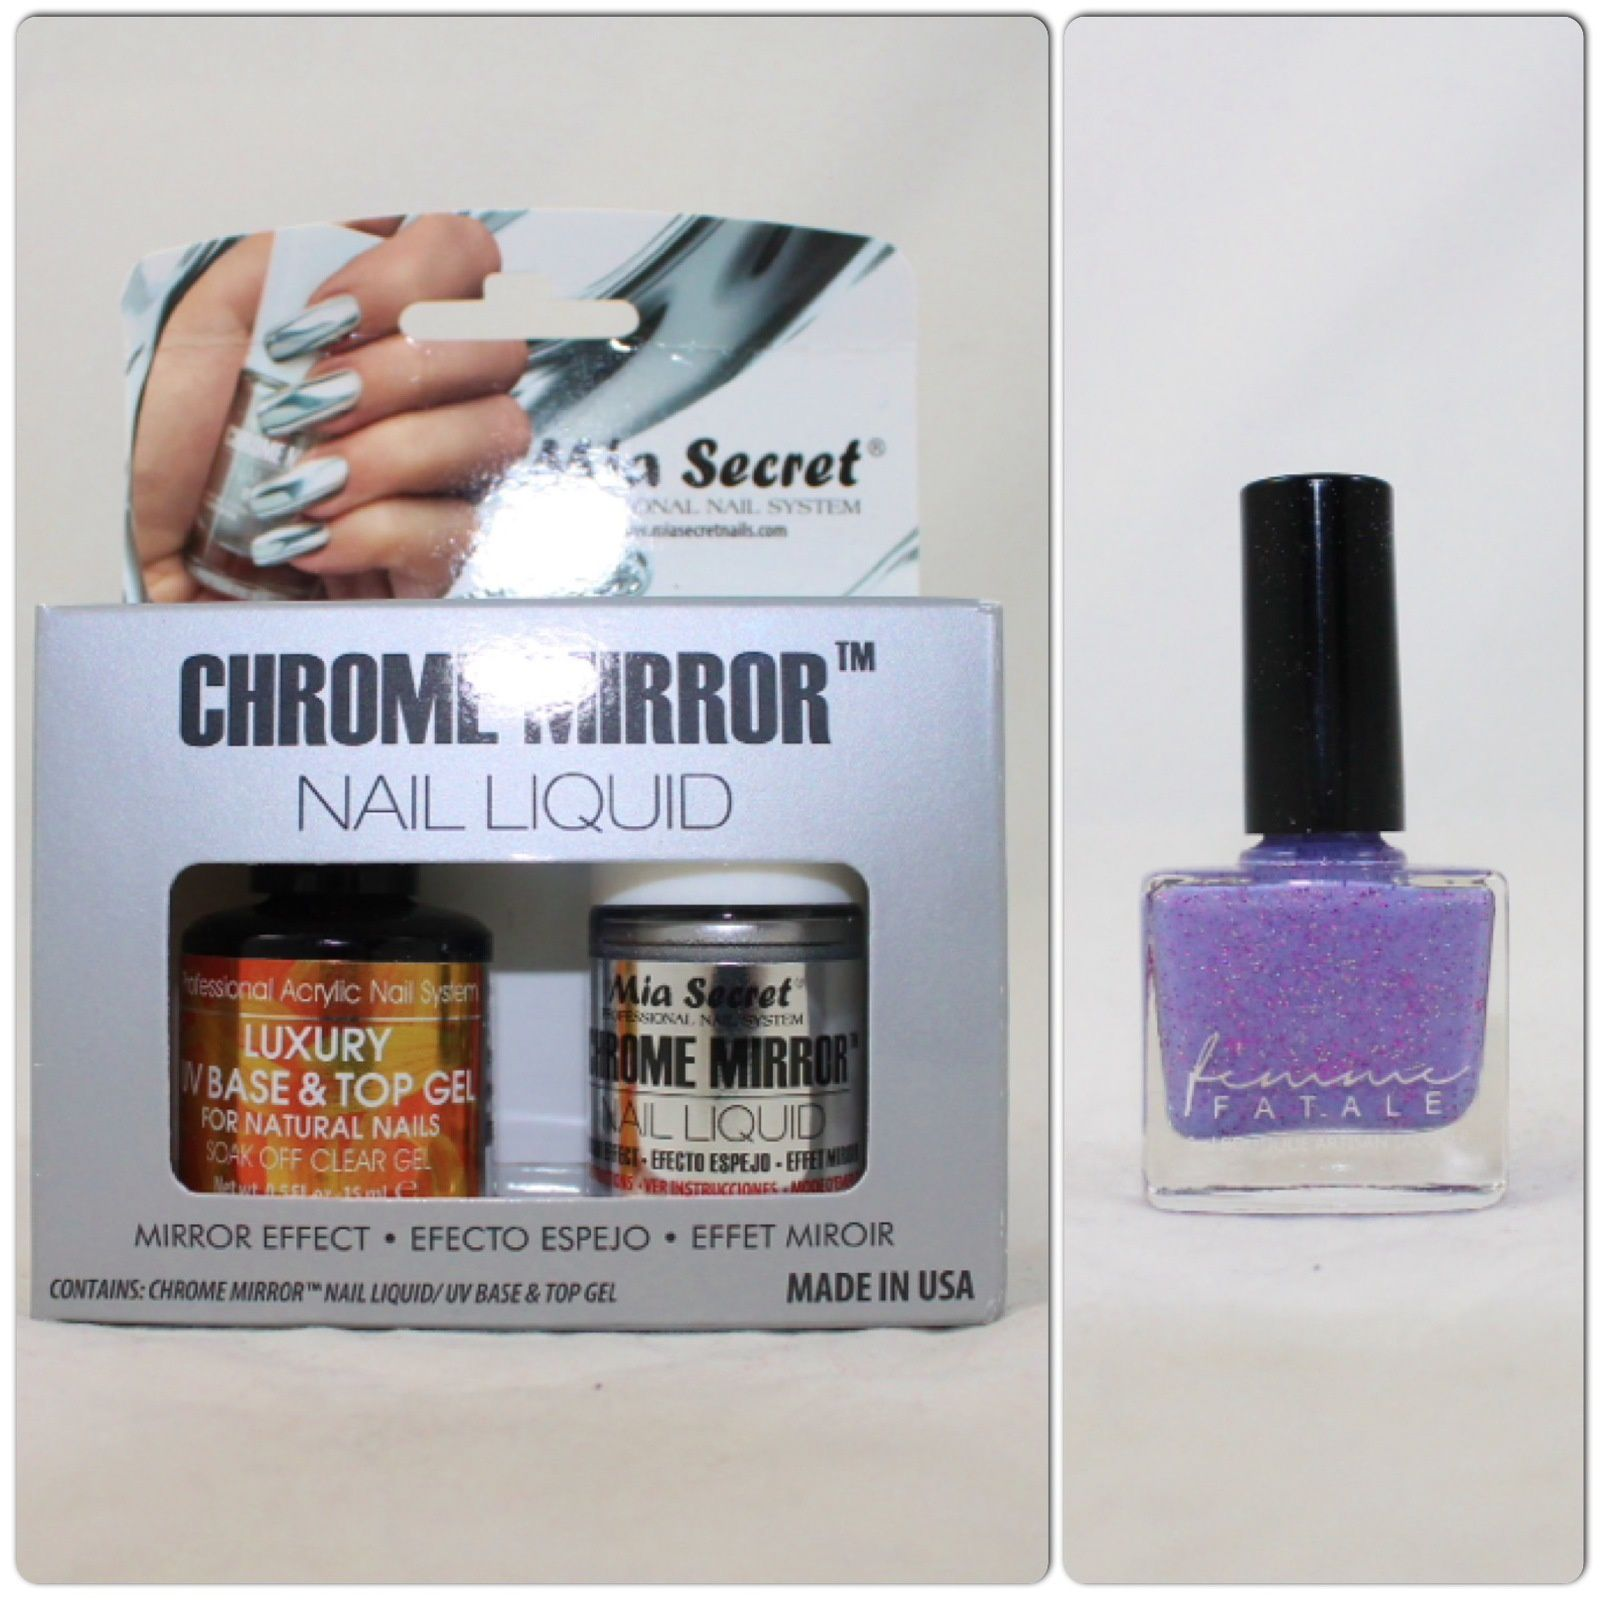 Mia Secret Chrome Mirror Nail Liquid and Femme FataleThe Purple Parlour (June'15 COTM)